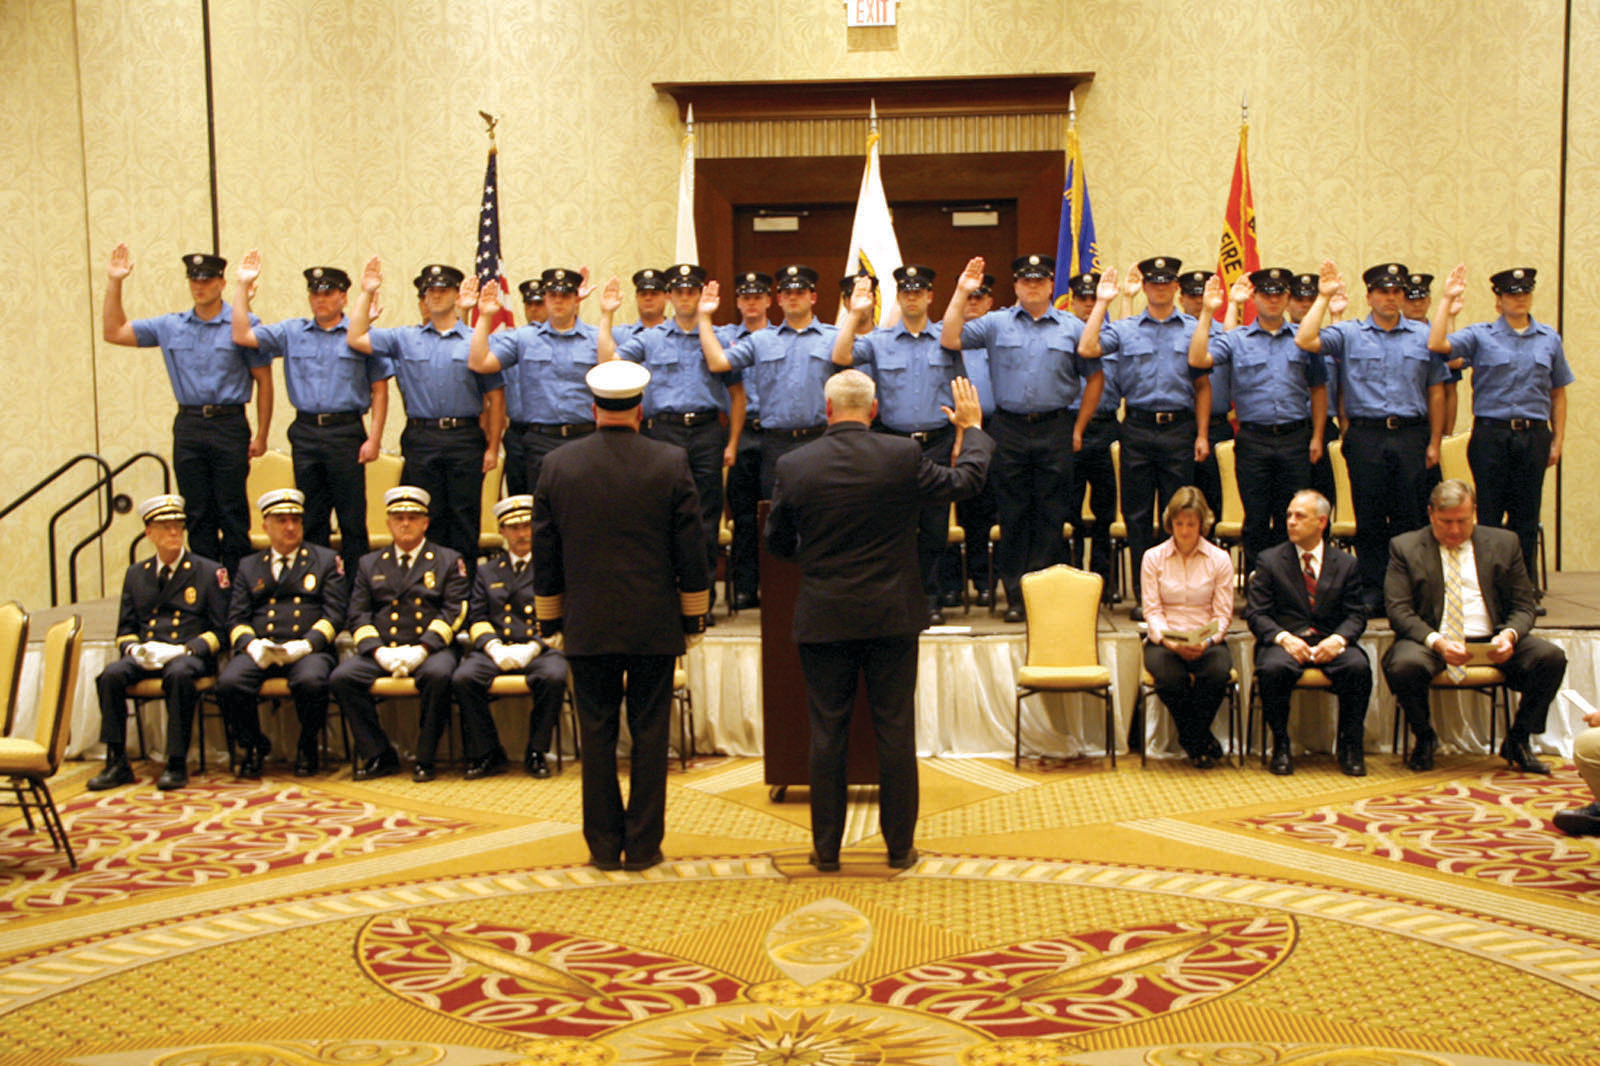 ALL 24: Mayor Scott Avedisian administers the oath to incoming members of the Warwick Fire Department at ceremonies held at the Crowne Plaza last month.